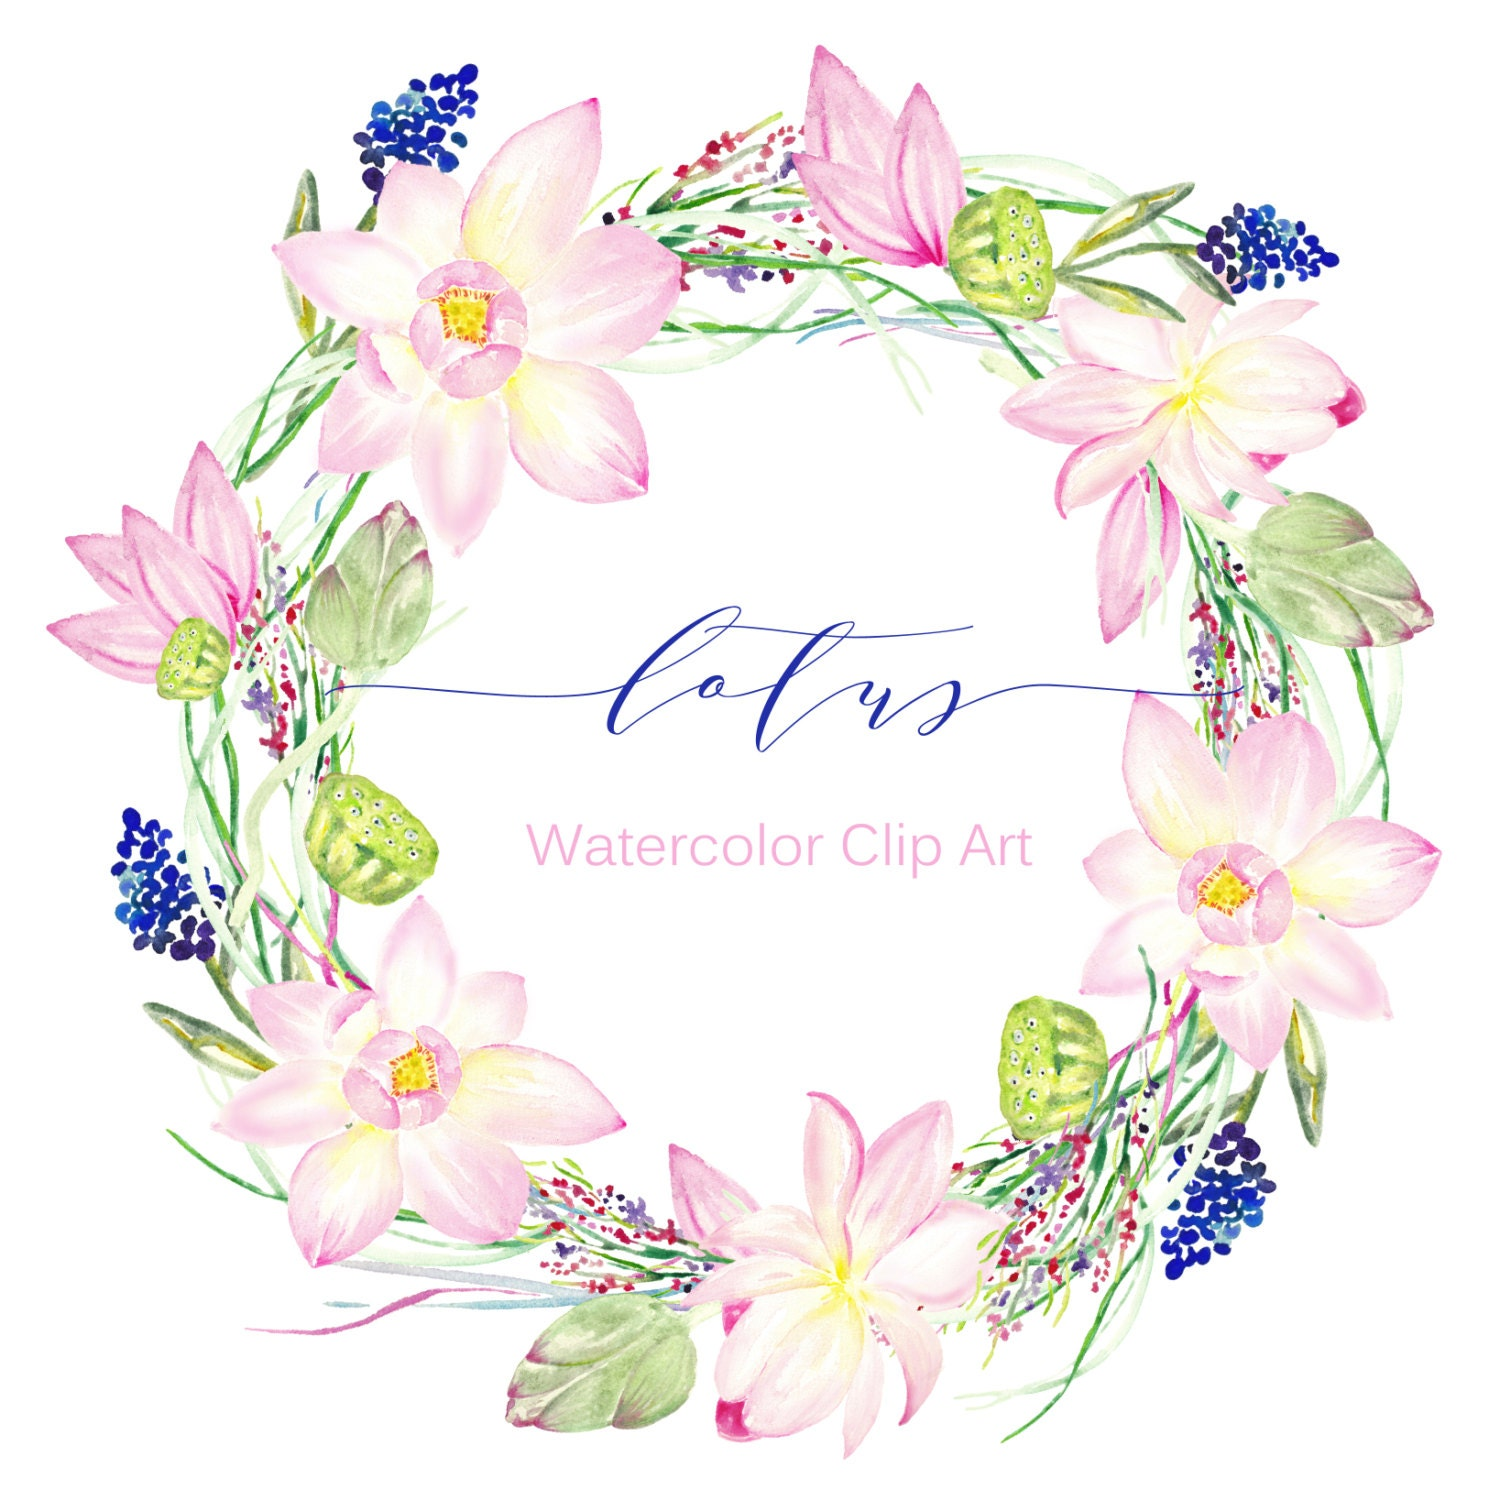 Wreaths Lotus Watercolor Clip Art Hand Drawn Wedding Light Green Tender Pink Lotus Flowers